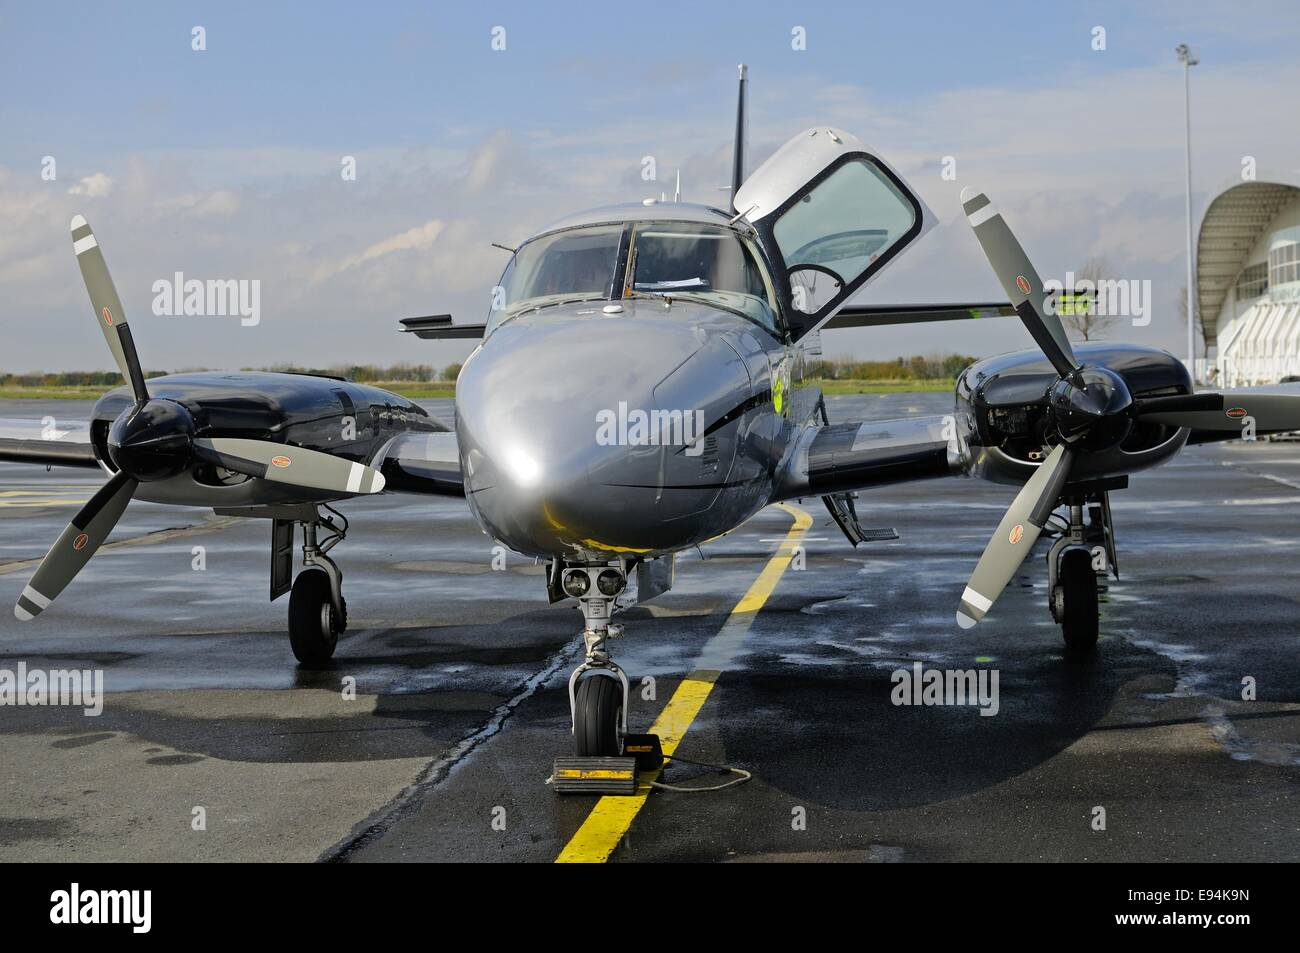 Front view of a Piper Chieftain twin-engined aircraft sitting on a tarmac air strip - Stock Image